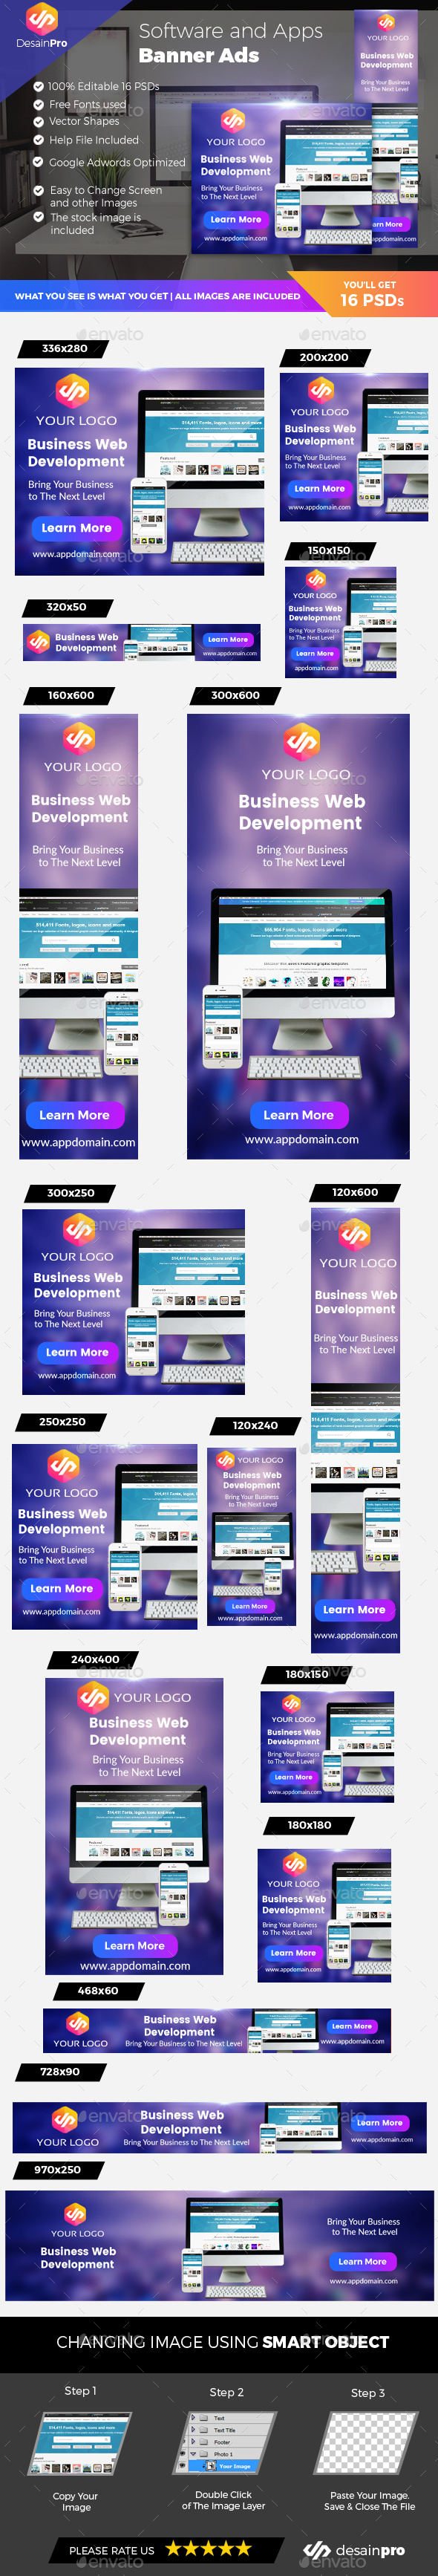 Software Banner Ads - Banners & Ads Web Elements